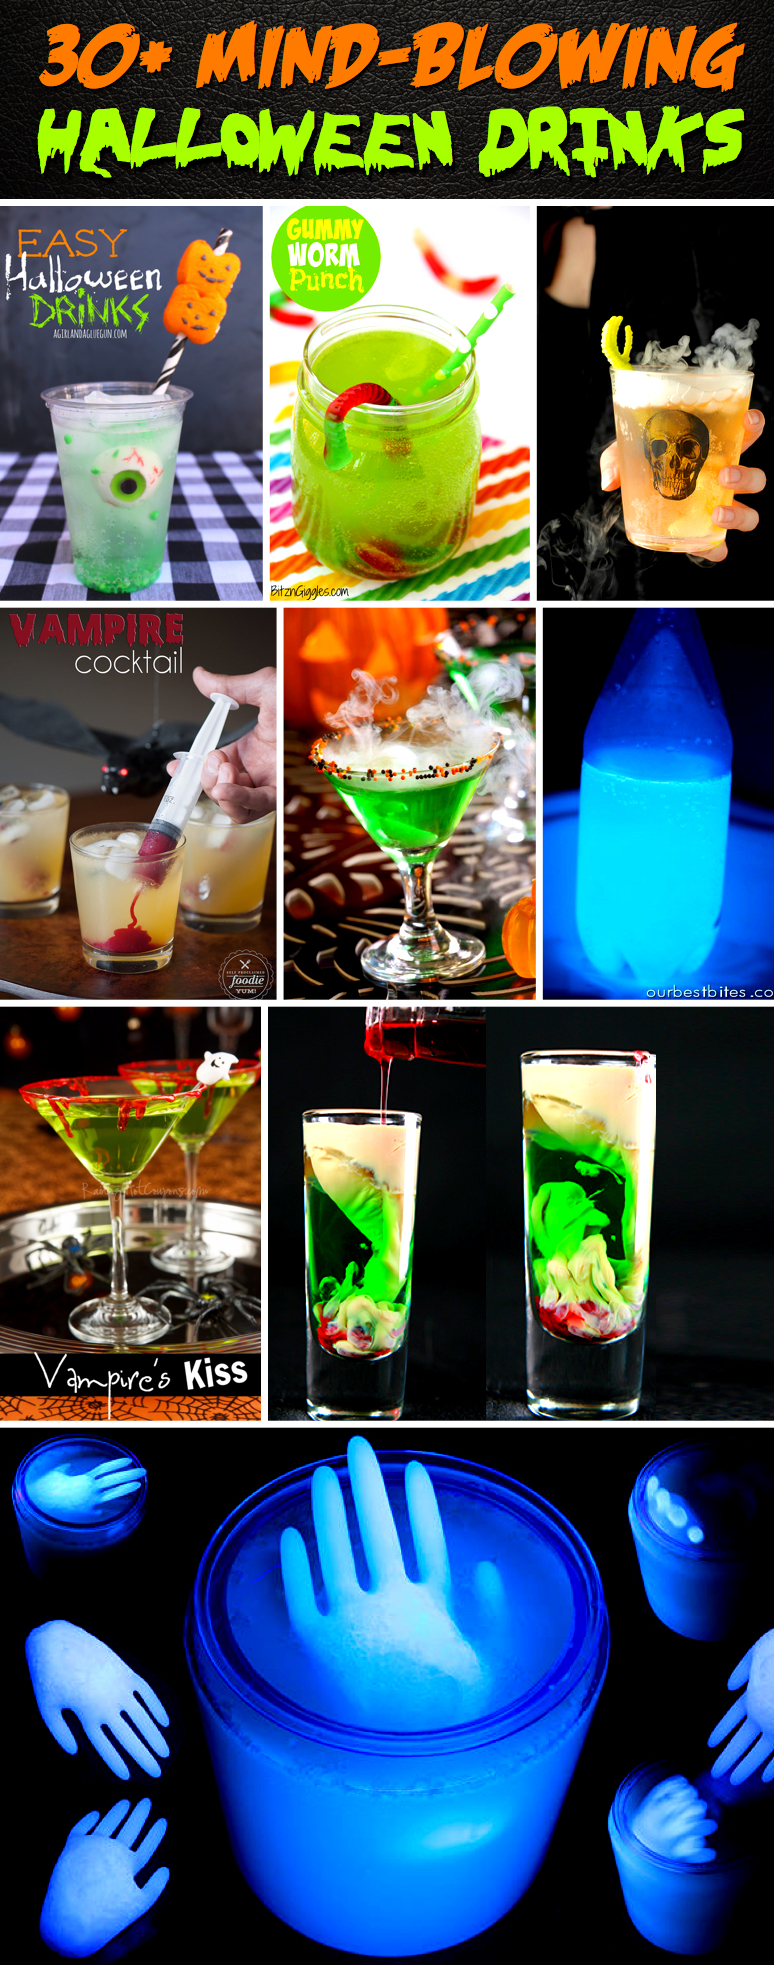 30+ Mind-Blowing Halloween Drinks Celebrating The Essence of Trick-or-Treat At Its Best!